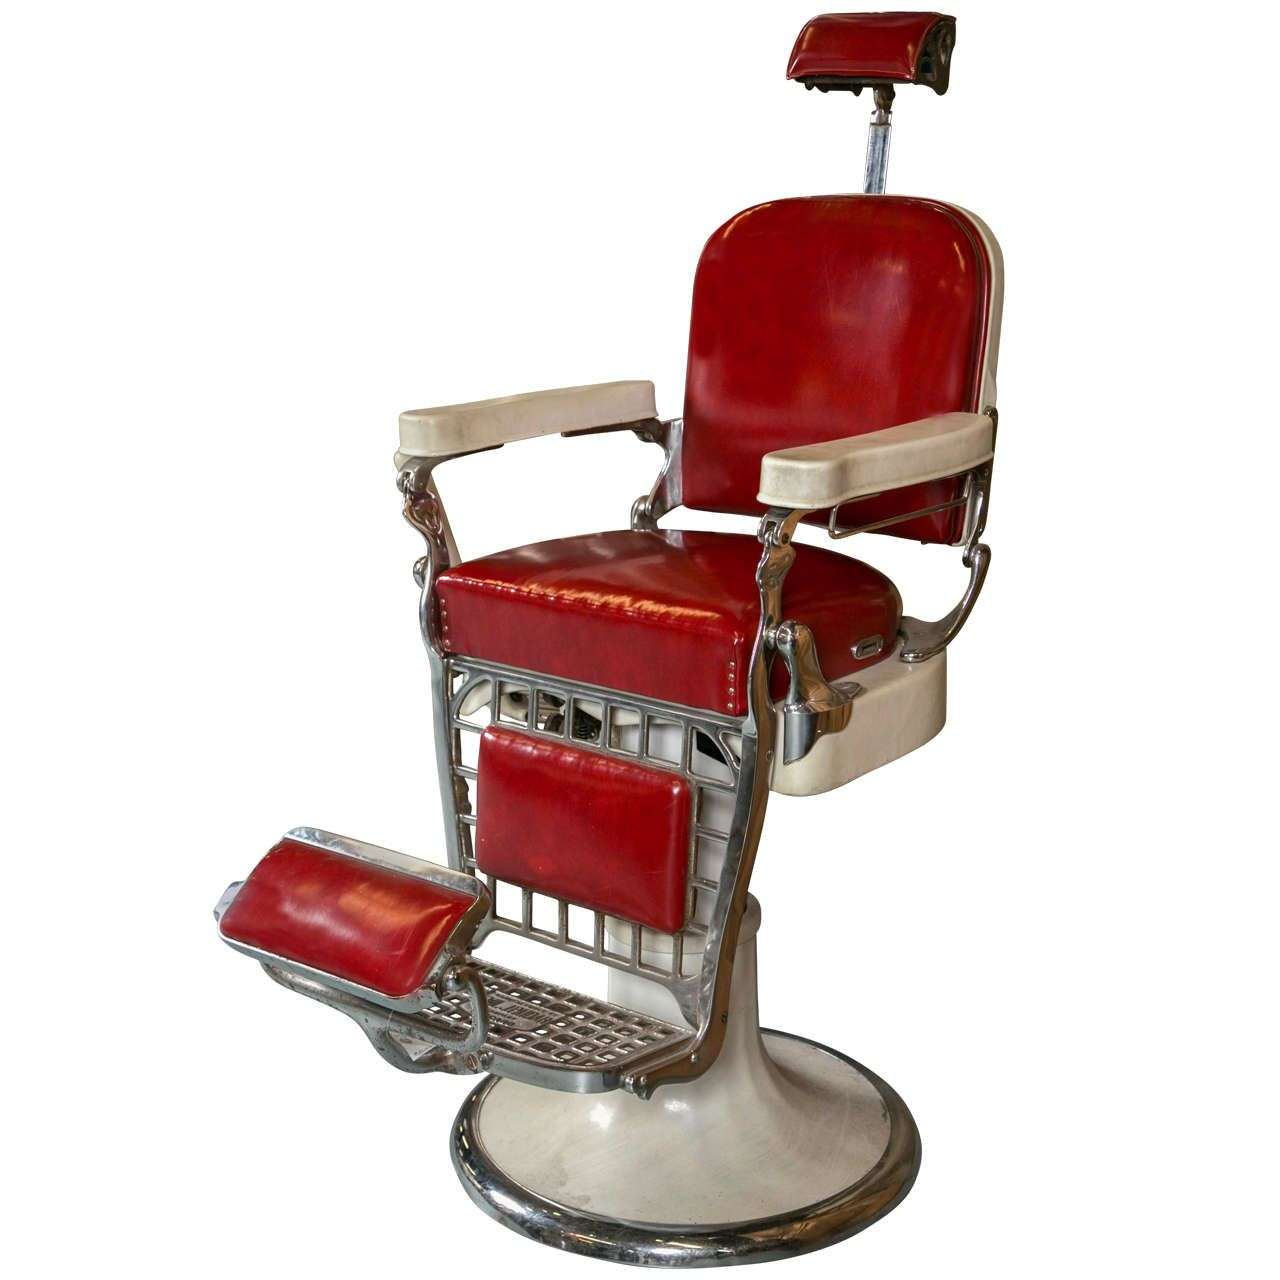 Mobile Barber Chair Wedding Chairs For Rent Antique Emil J Paidar Salons